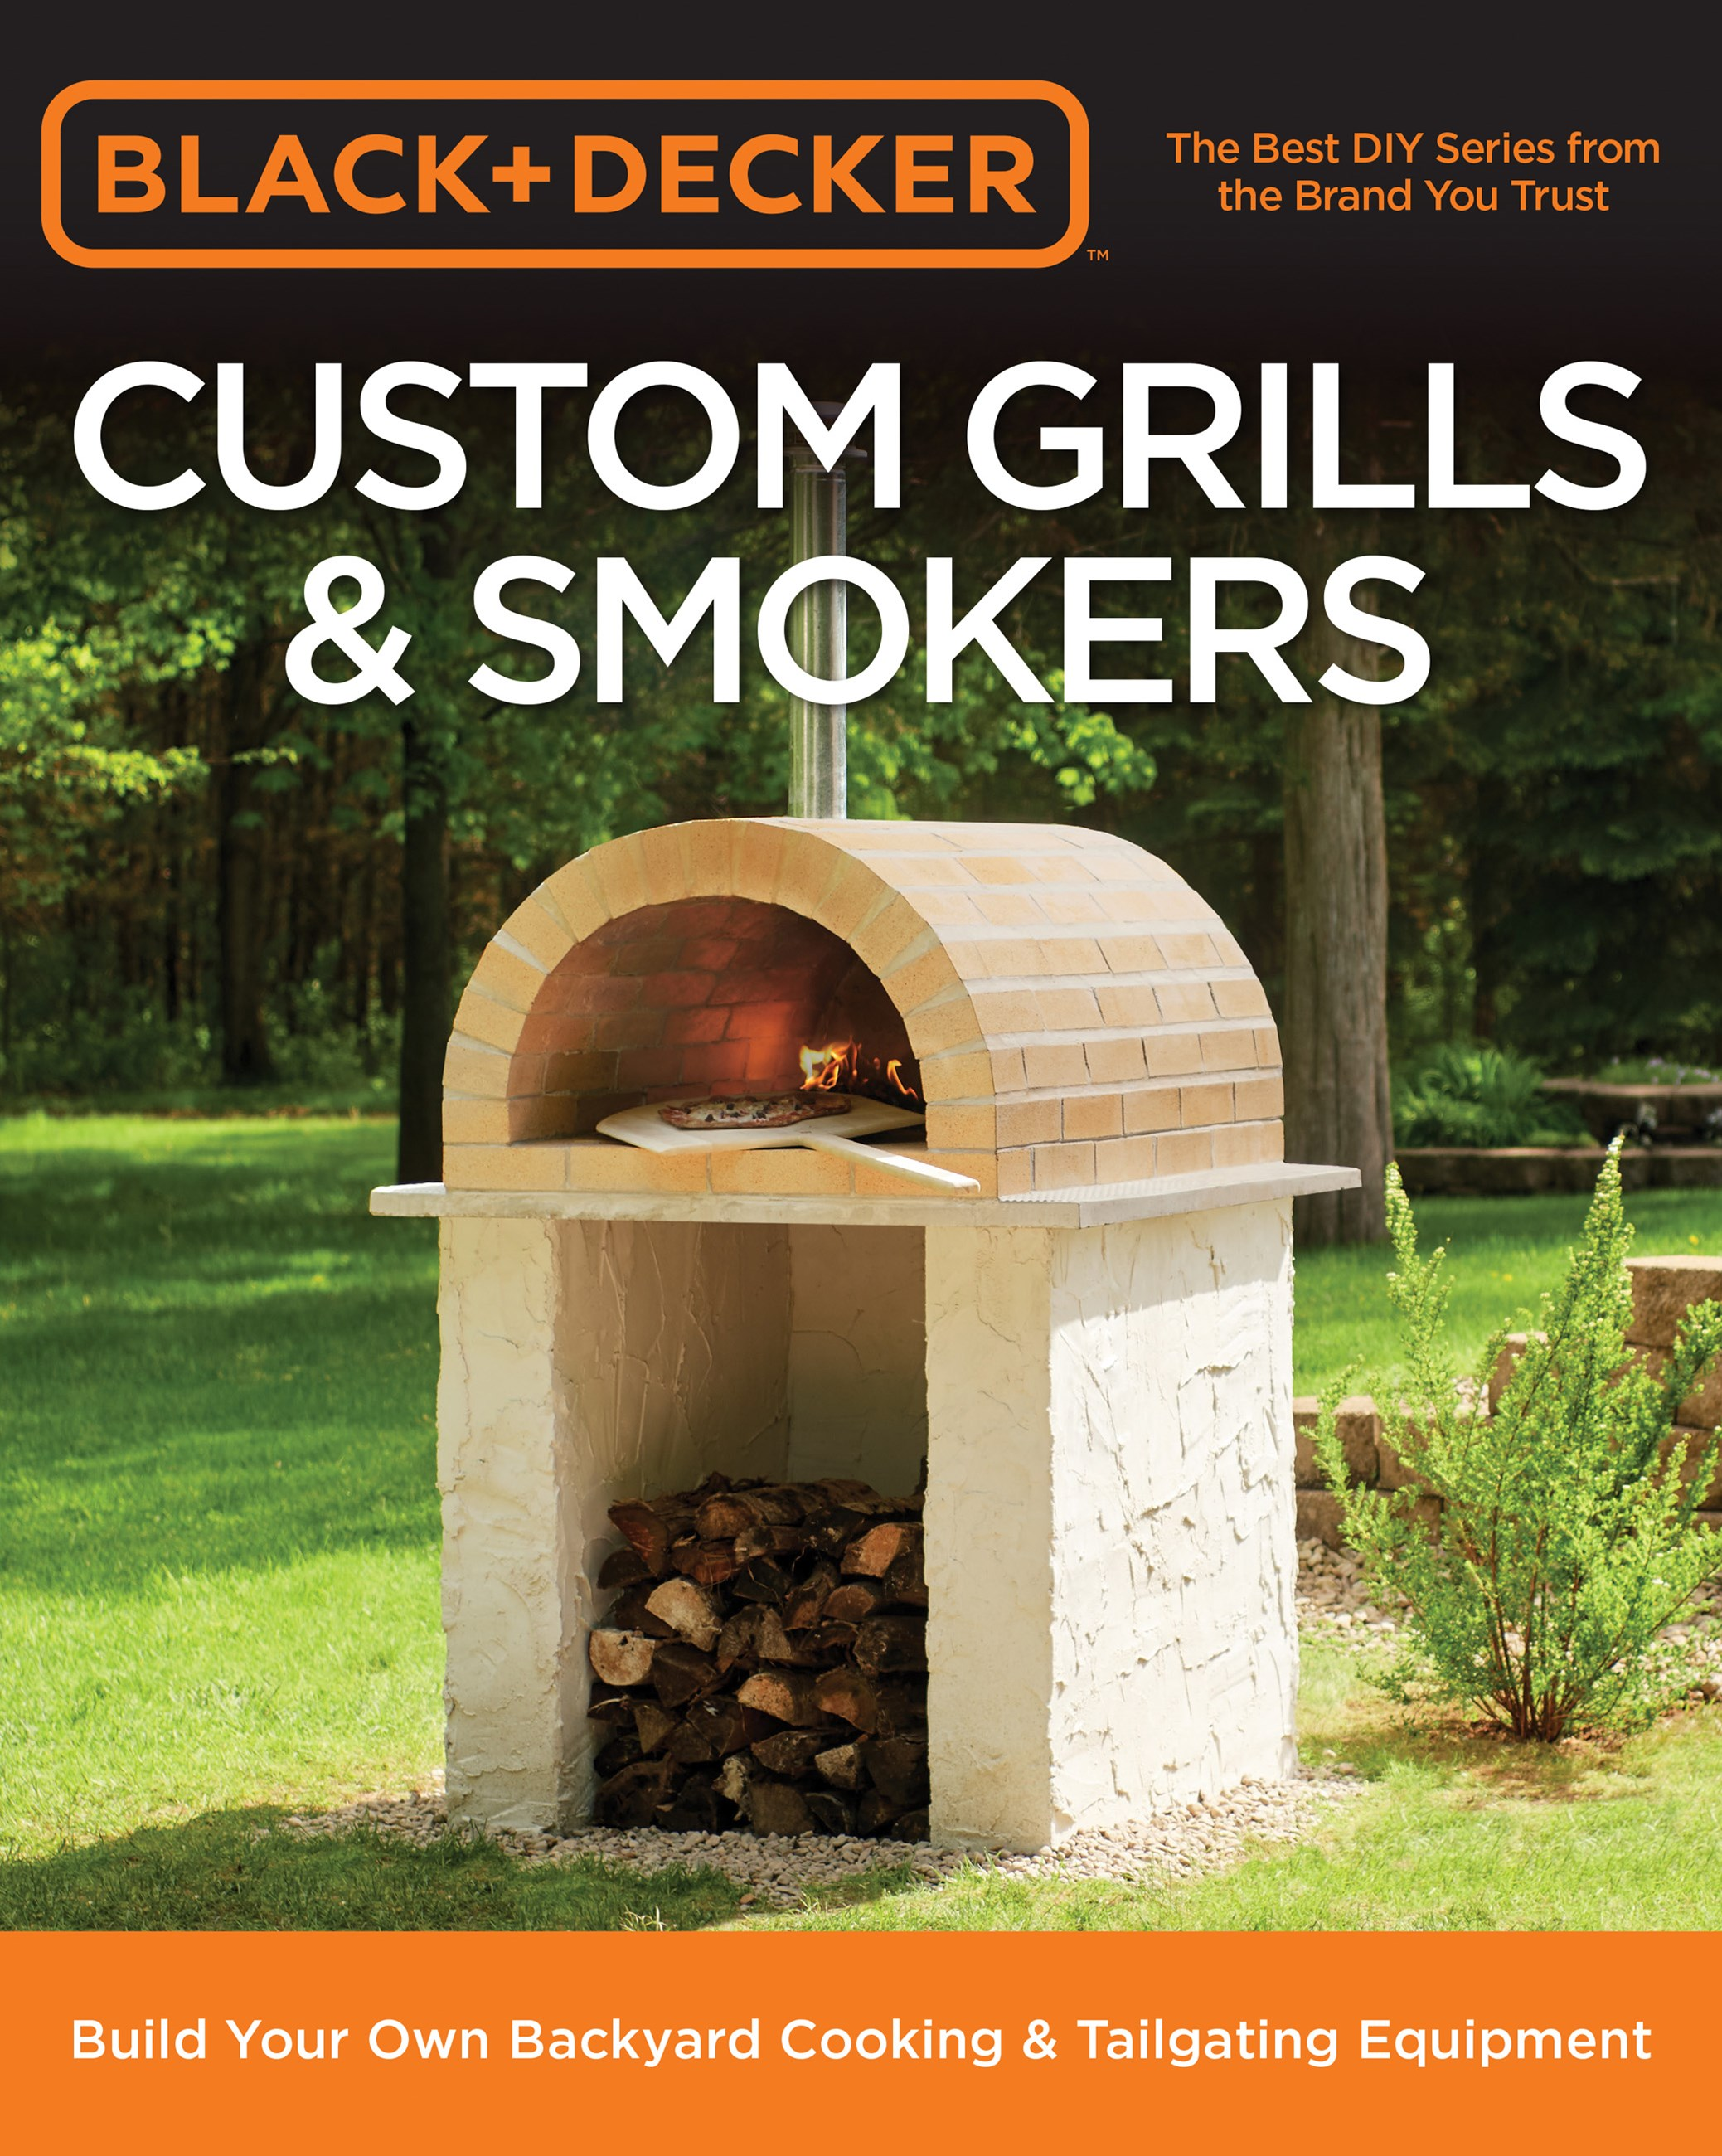 Black & Decker Custom Grills & Smokers